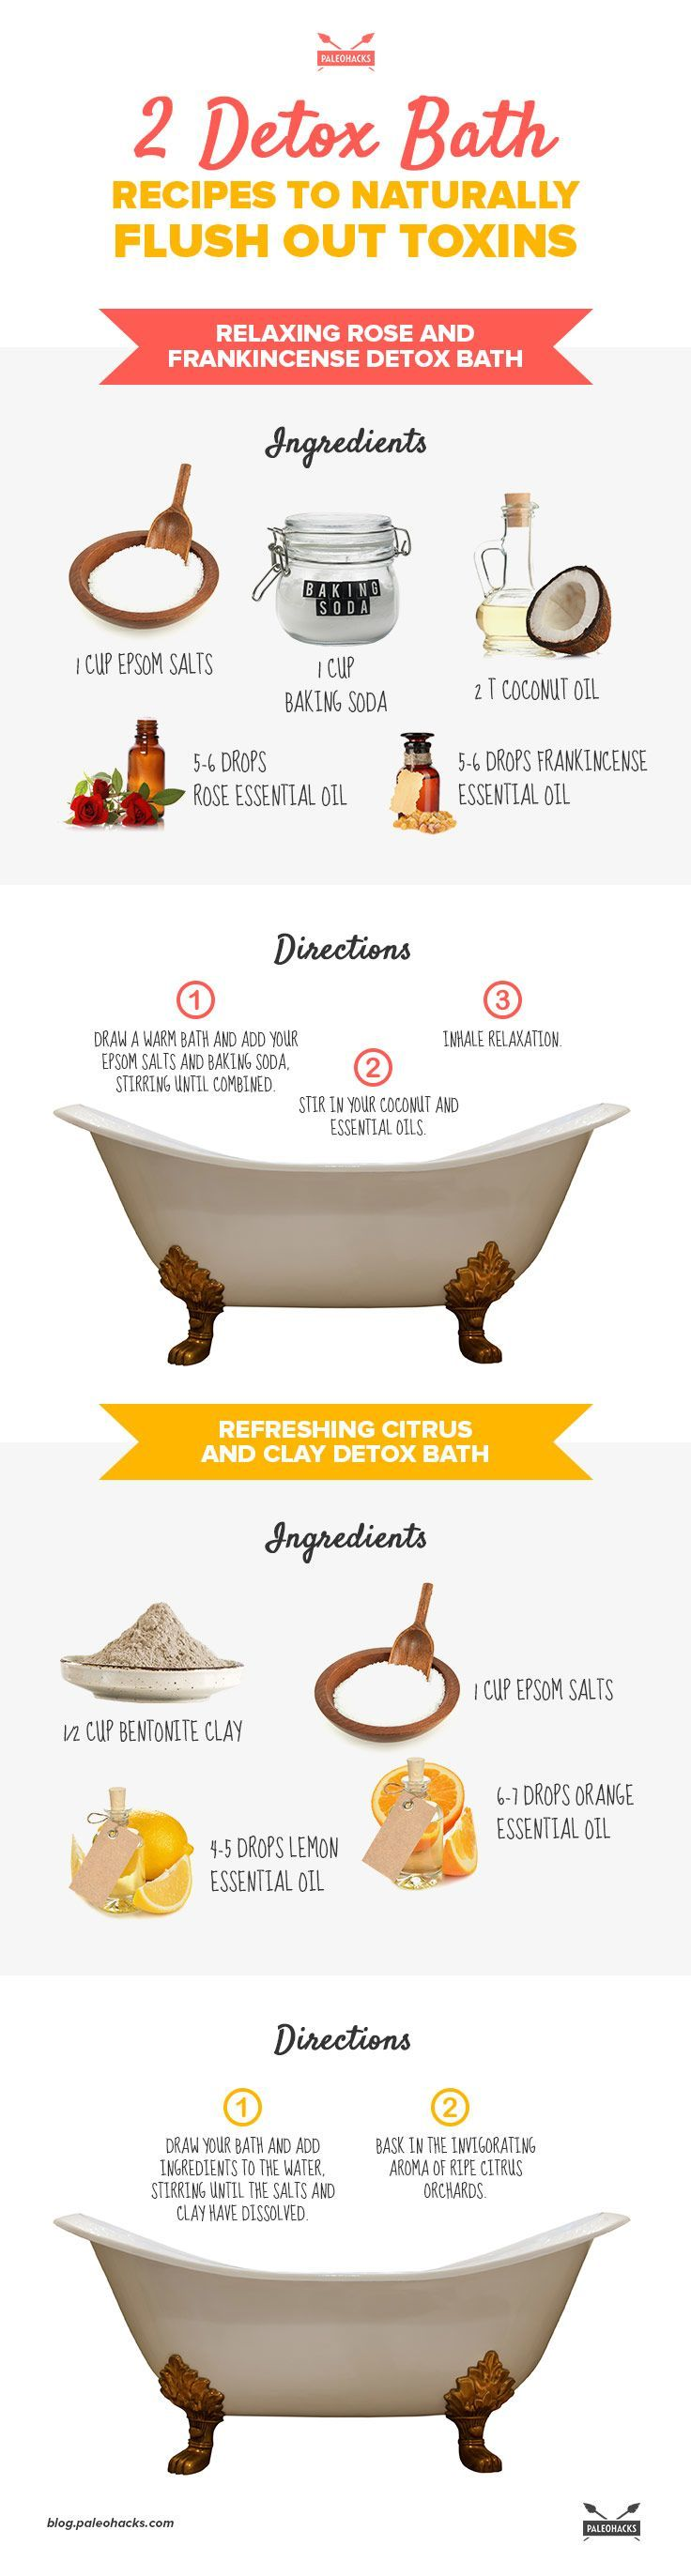 Add these ingredients to your next bubble bath for the ultimate detoxifying soak.